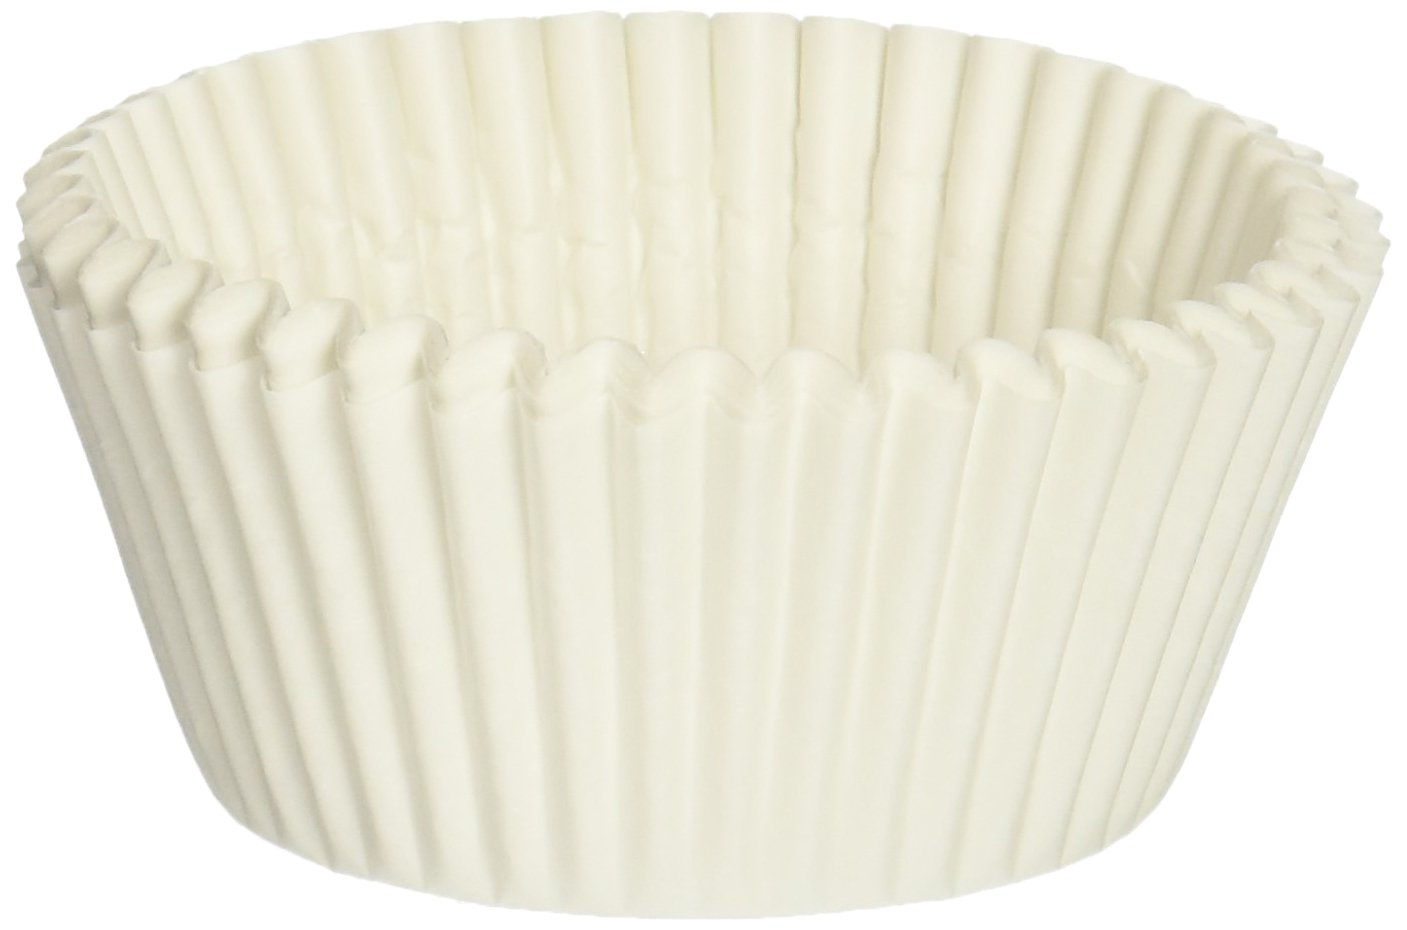 Oasis Supply Momoka's Apron Baking Cups, Standard, 1000-Count, White VK453-1000